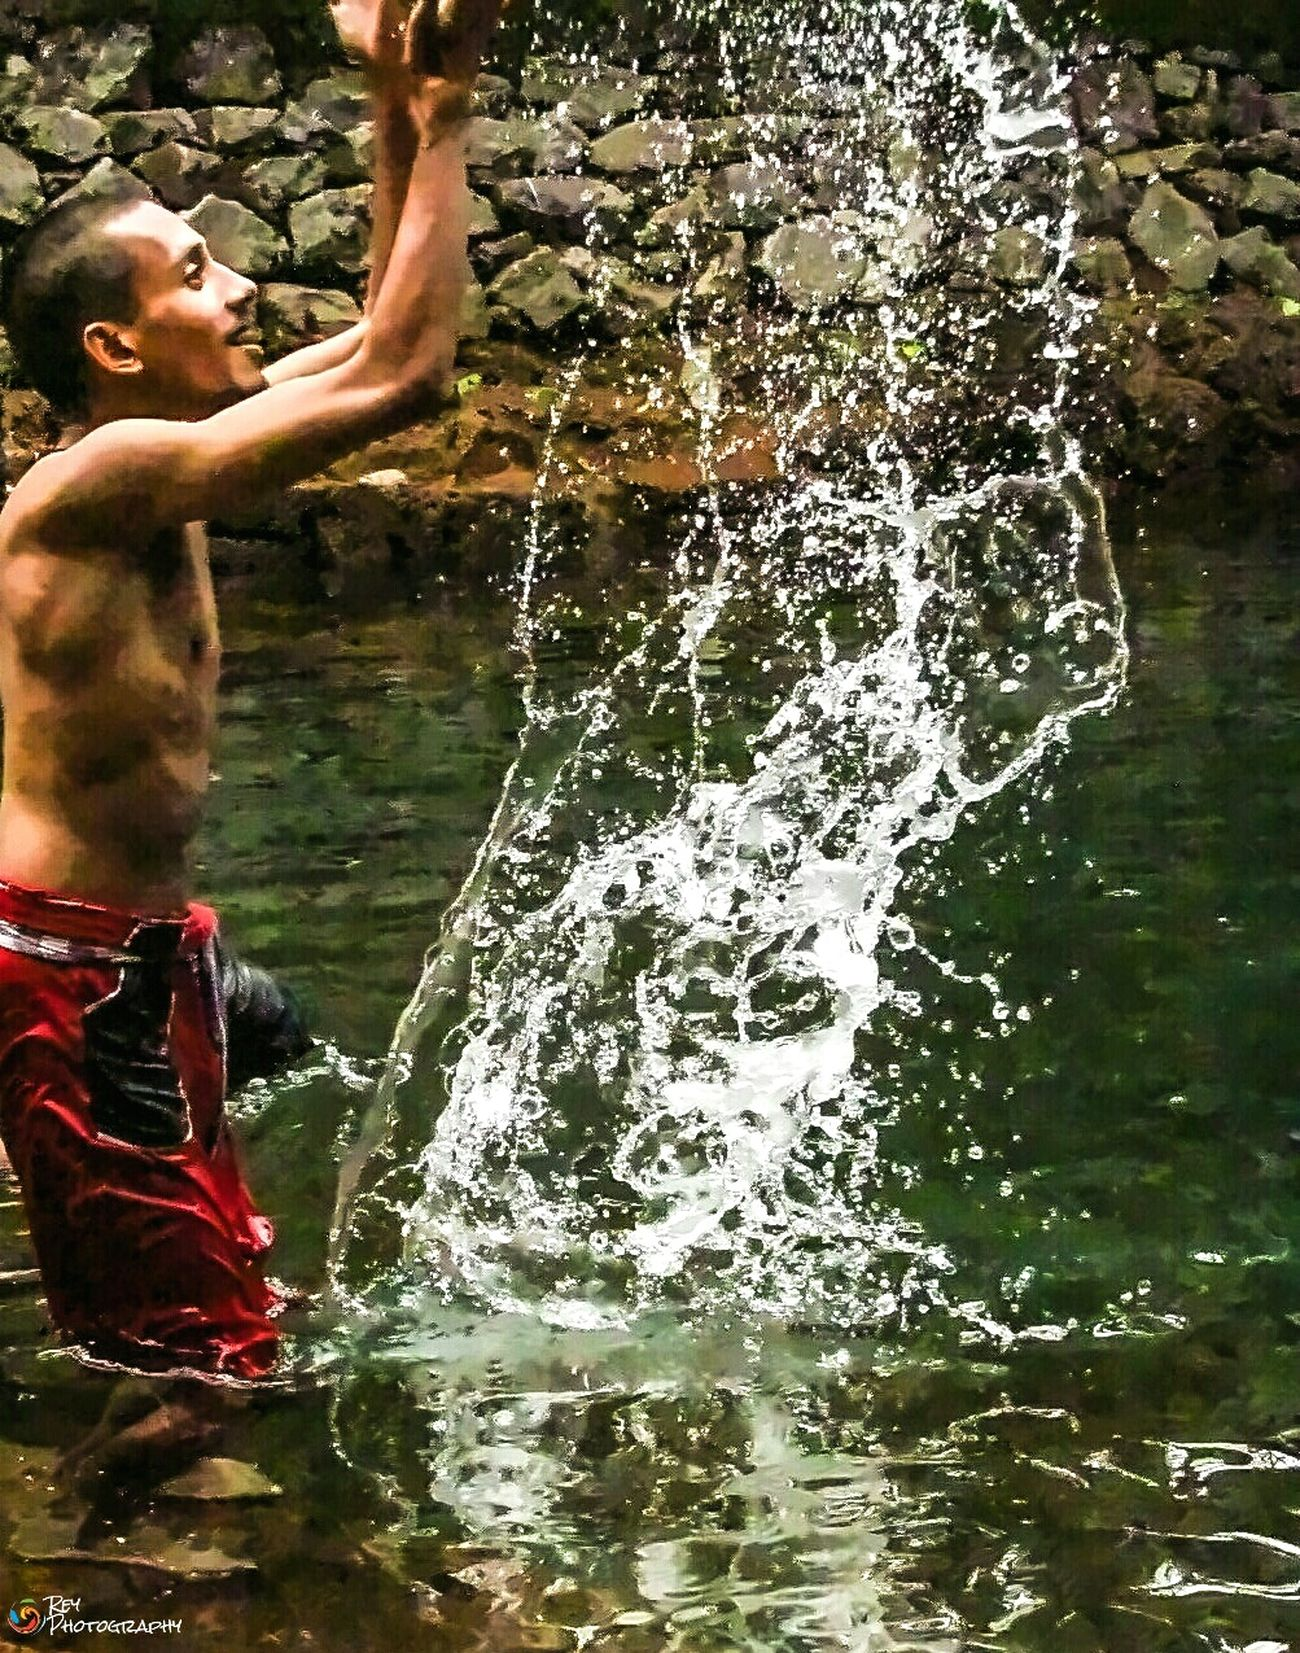 Capturing Freedom setting himself free..!! Open Edit Stressreliever Waterdrops Breakfree SetFree Enjoy Life Countryside Popular Photos EyeEm Best Shots